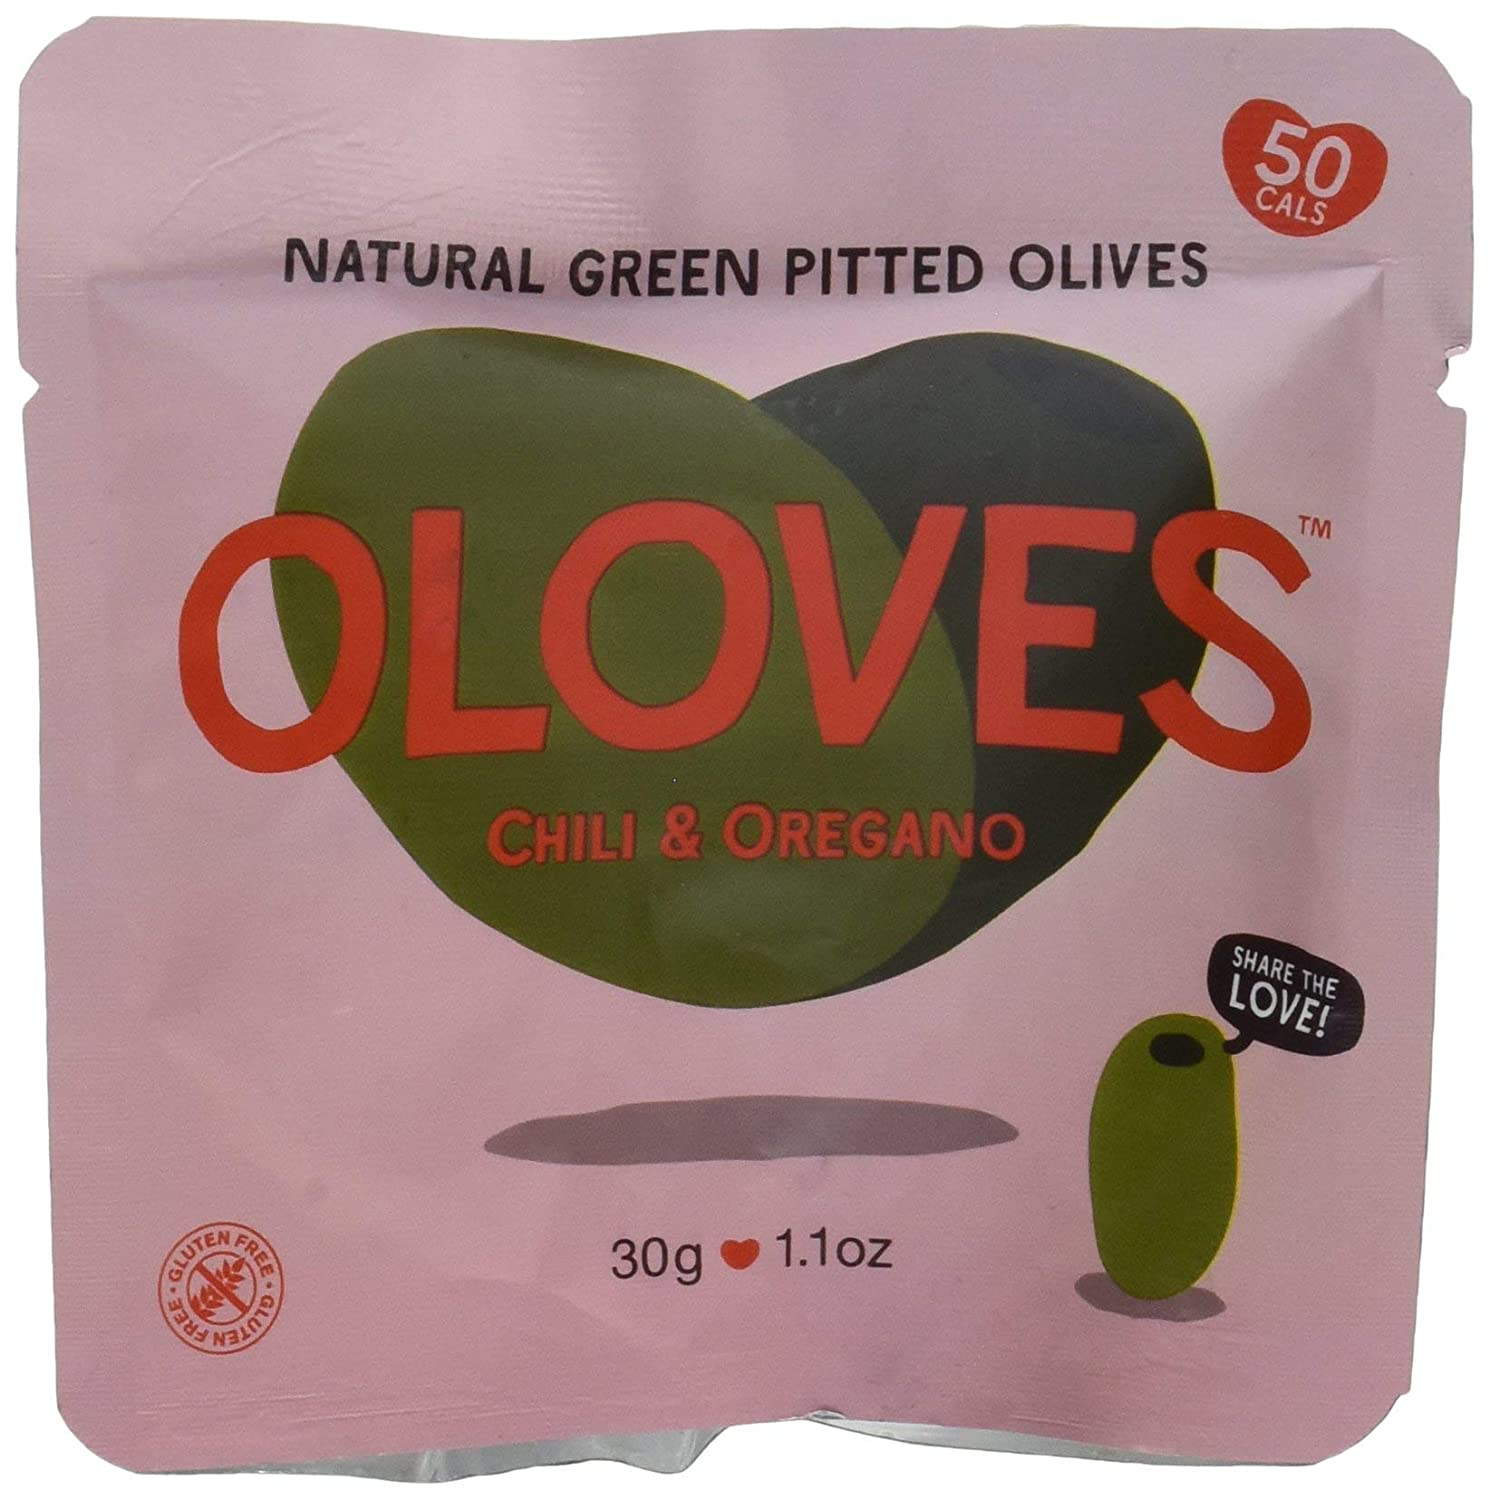 OLOVES Chili & Oregano | Fresh Green Pitted Olives | All Natural | Healthy Snack | Vegan | Gluten Free | Kosher | Low Cal | 40 Pack (1.1oz Bags)